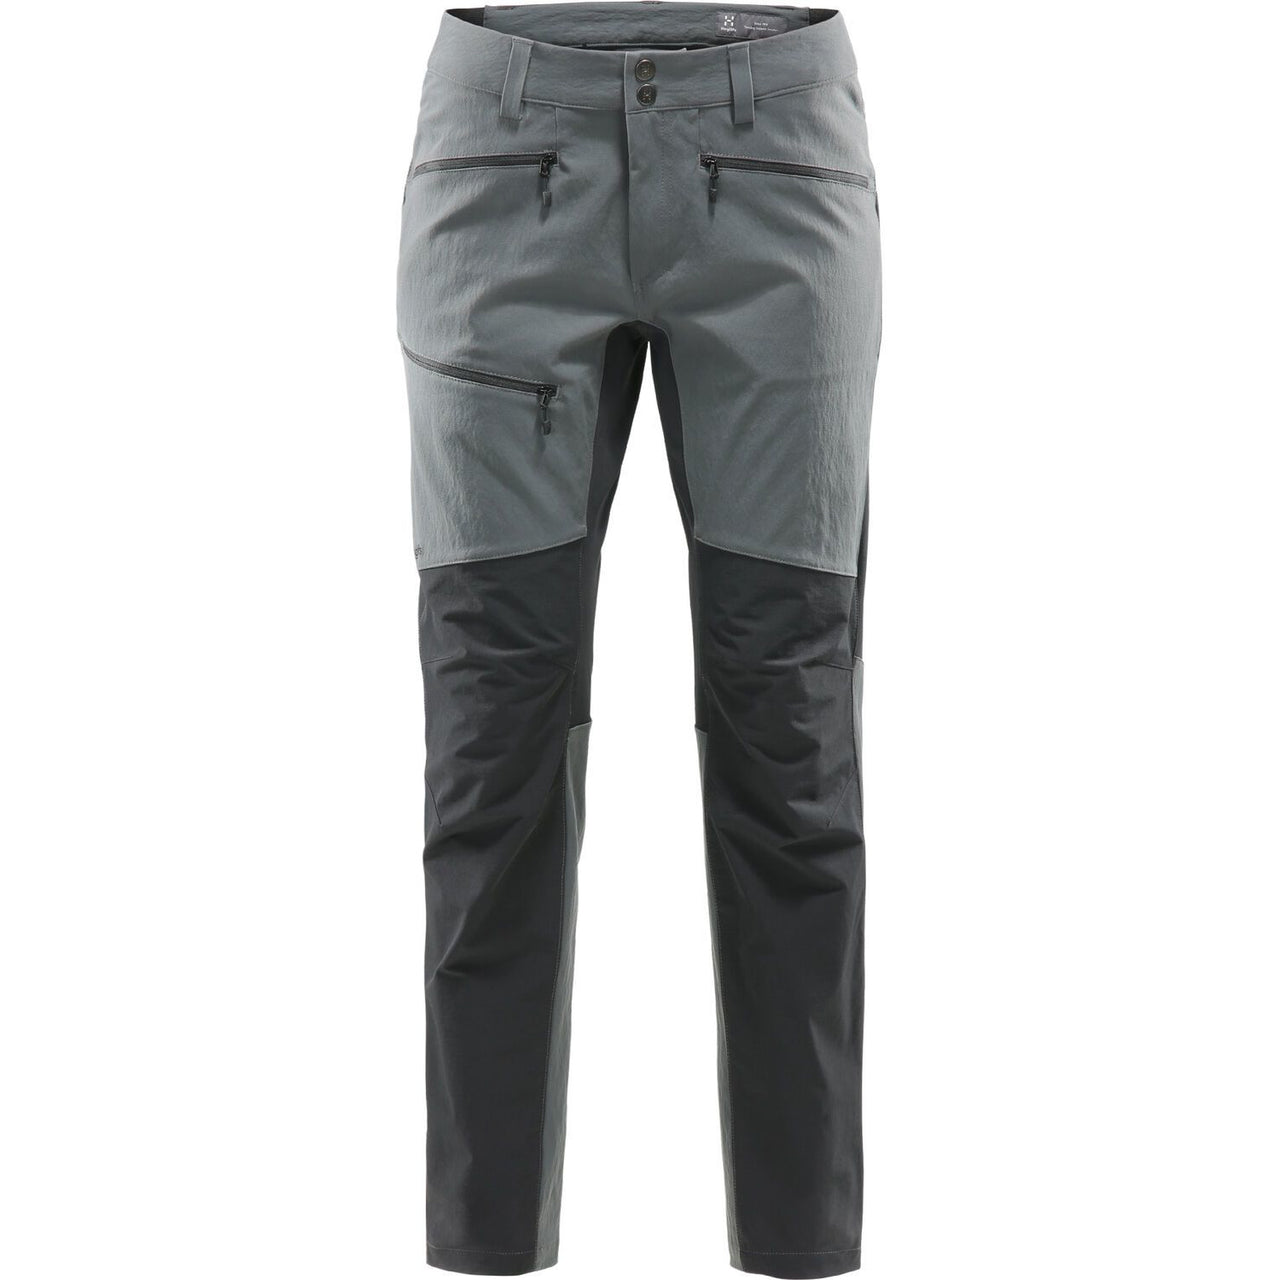 Haglofs Rugged Flex Men's Trouser